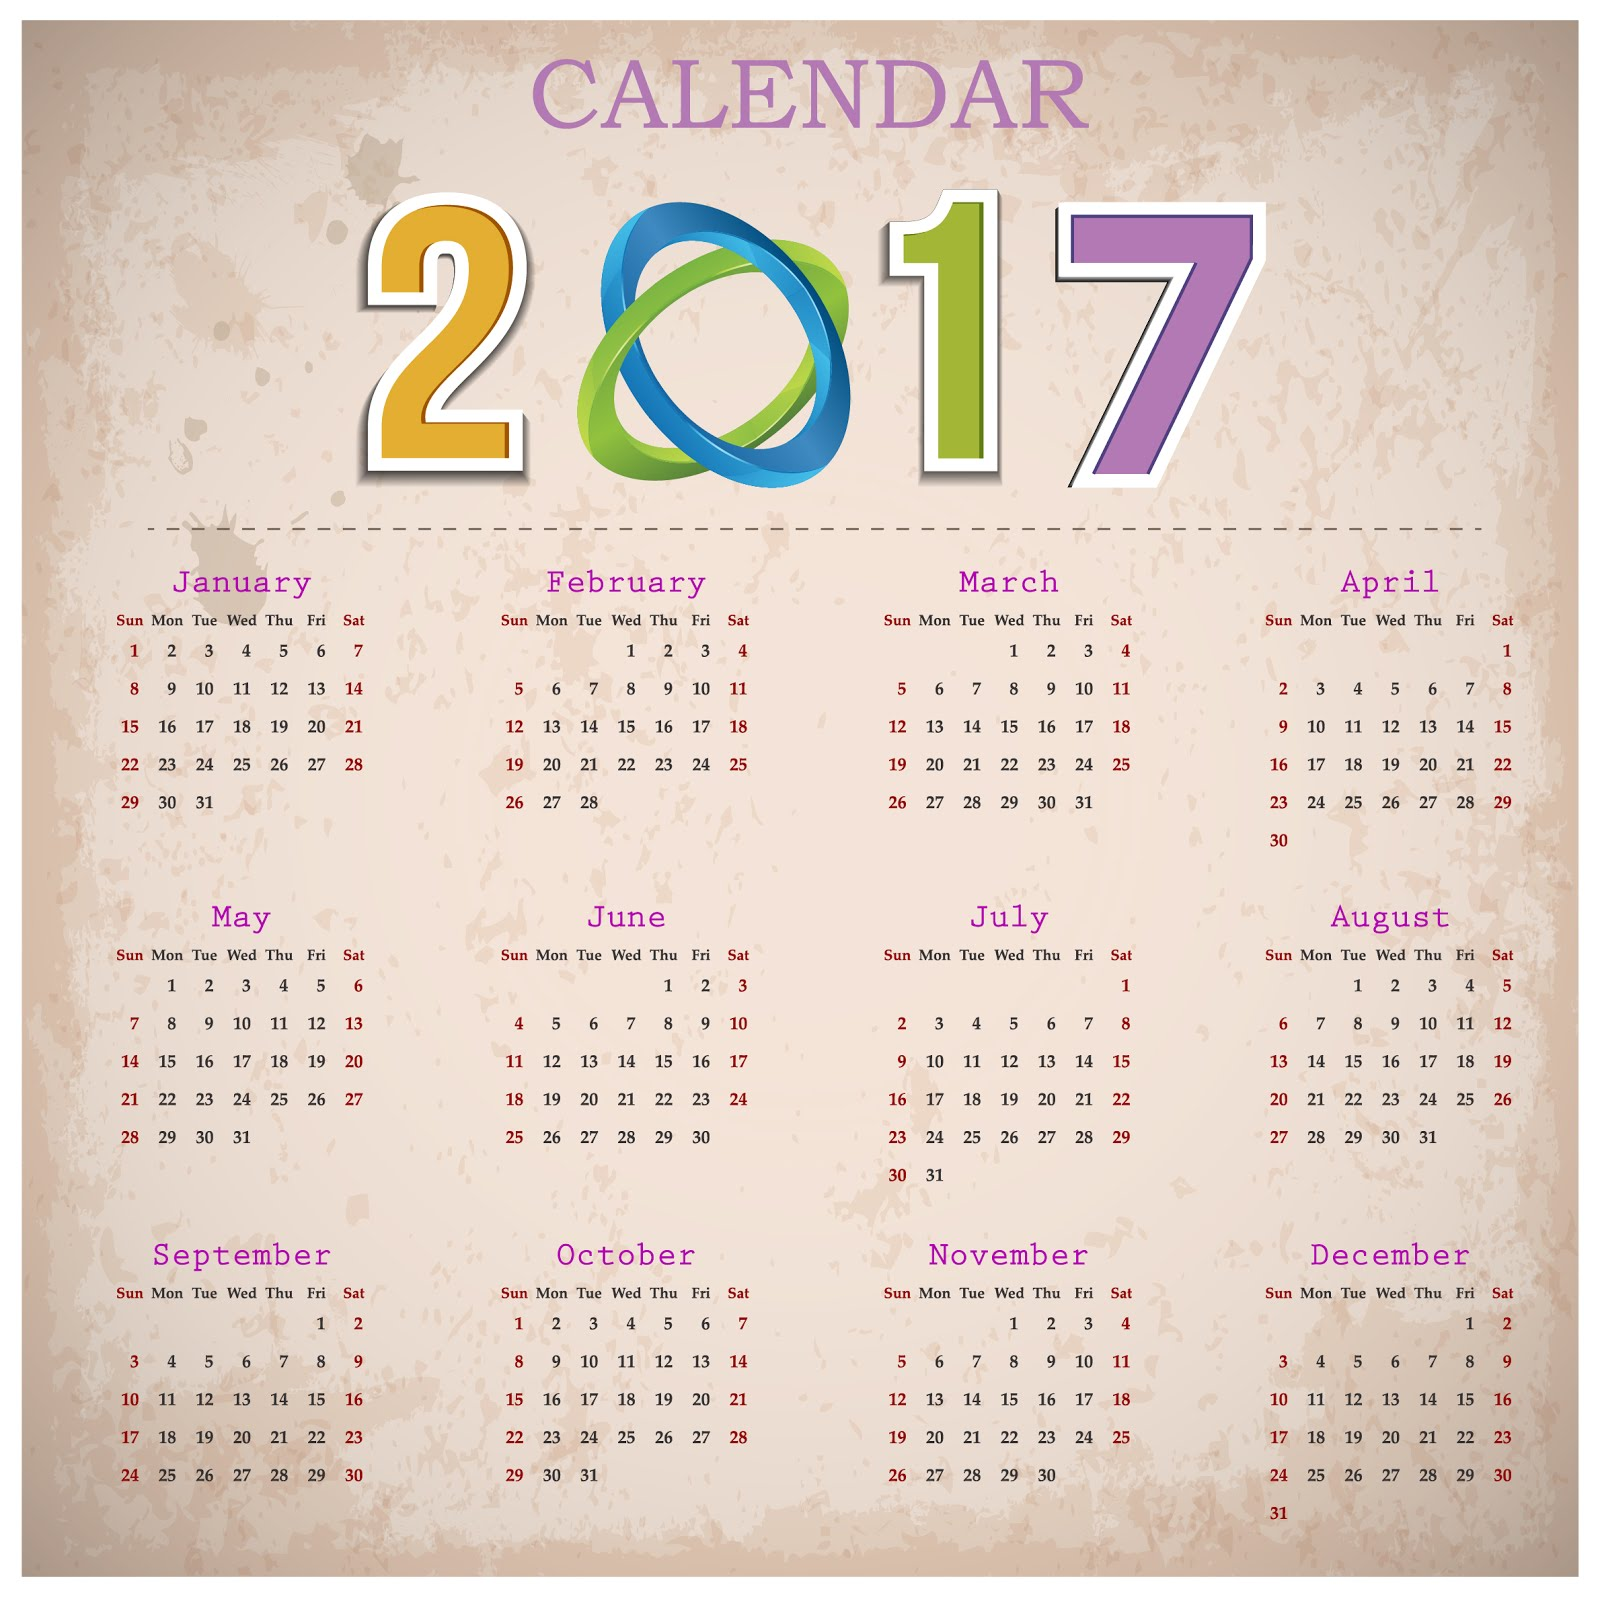 ... calendar 2017, template june month calendar 2017, template calendar